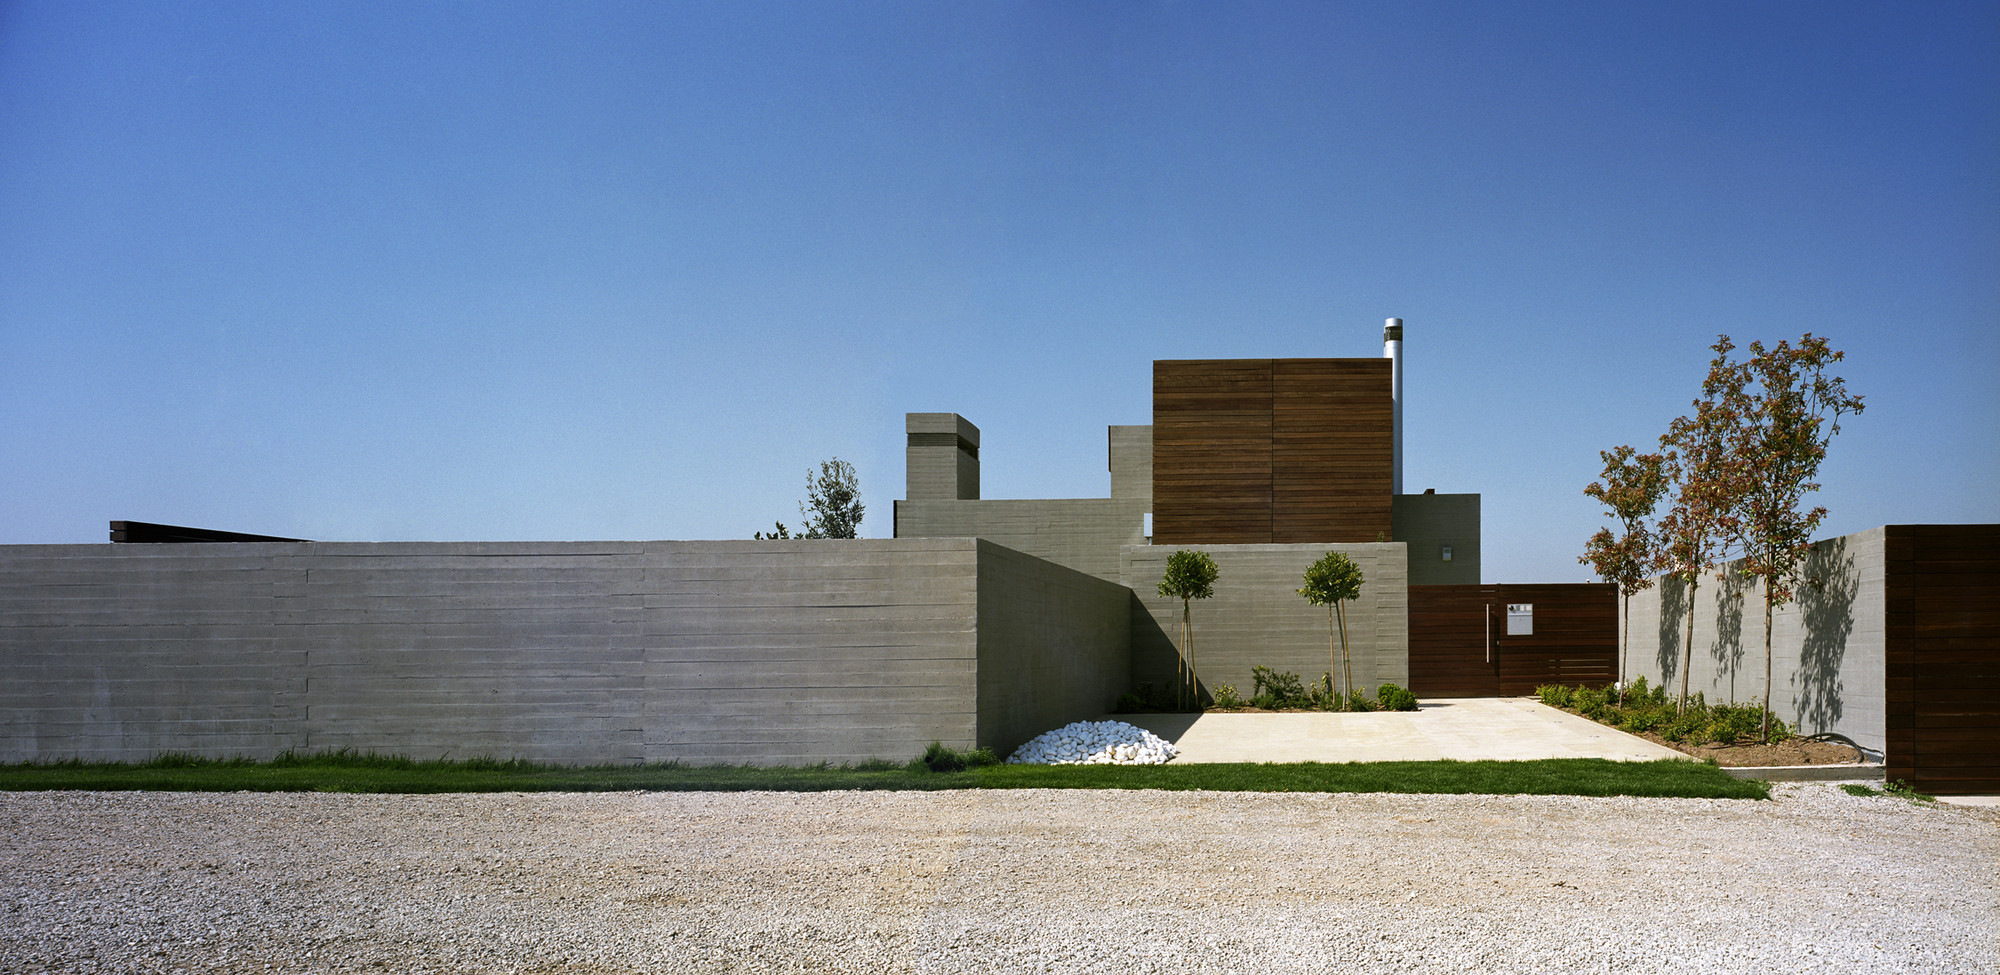 Residence in larissa by potiropoulos d l architects in for L architecture